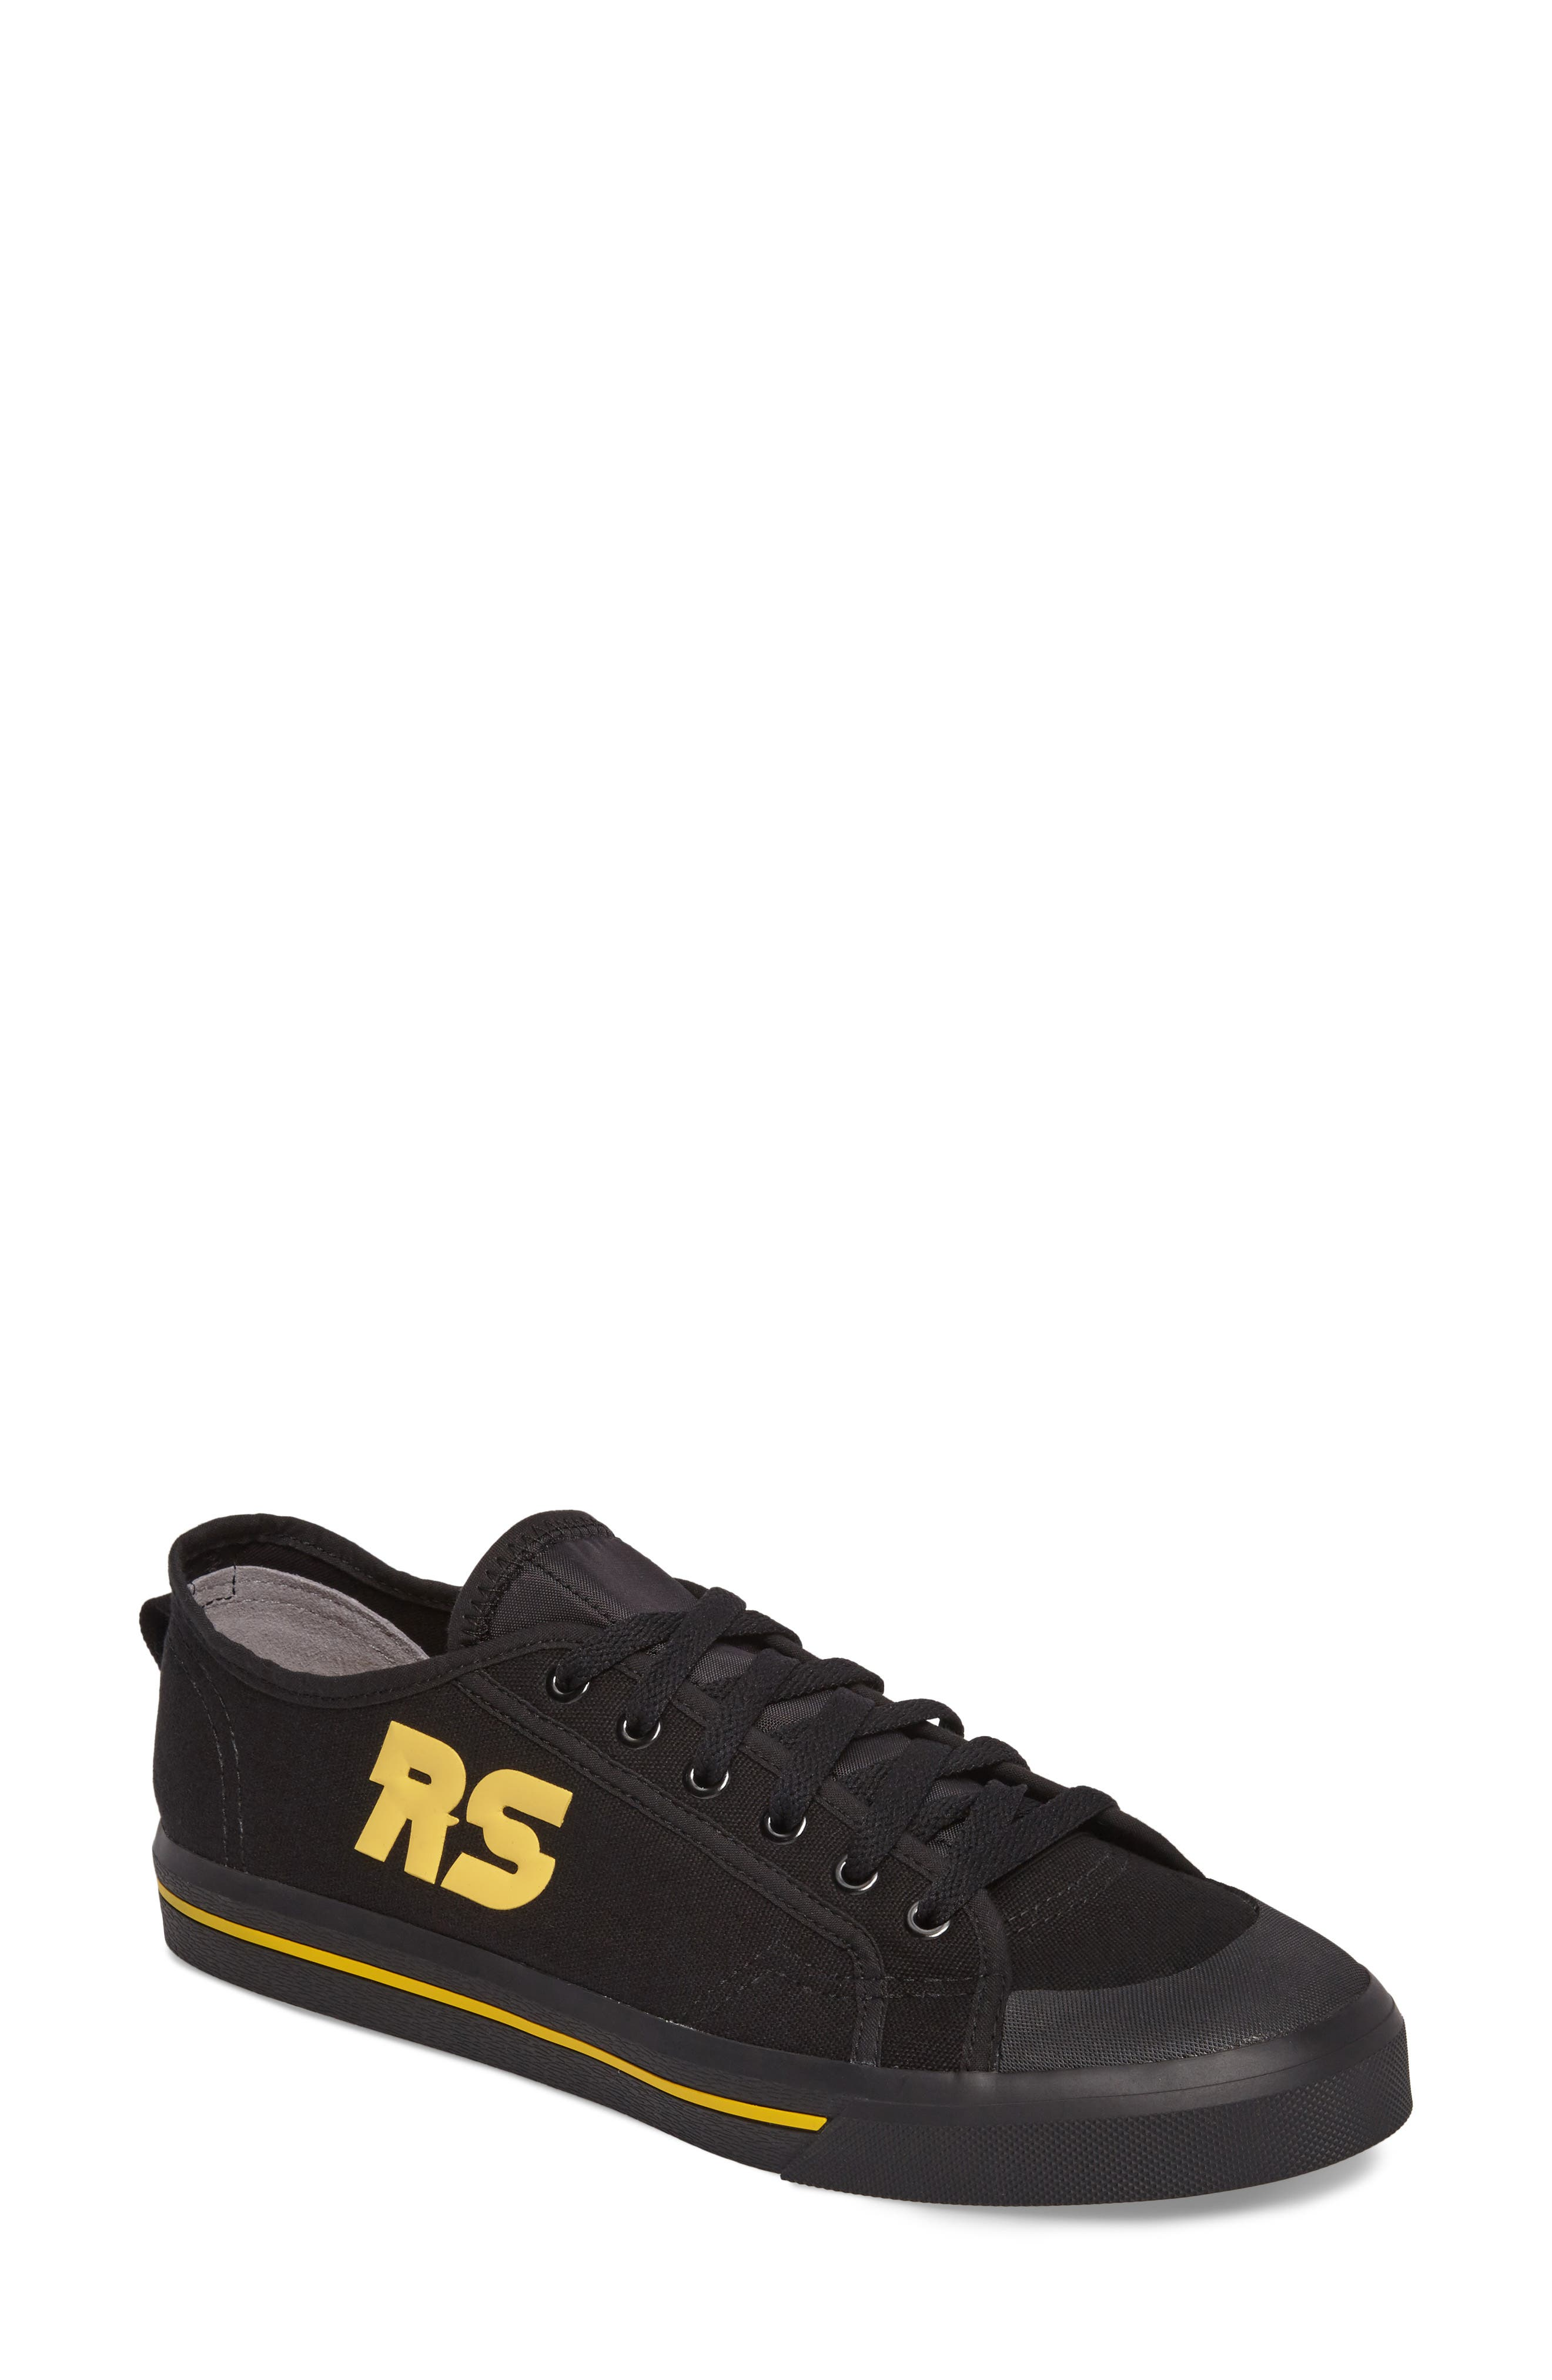 adidas by Raf Simons Spirit Low Top Sneaker,                         Main,                         color, 001